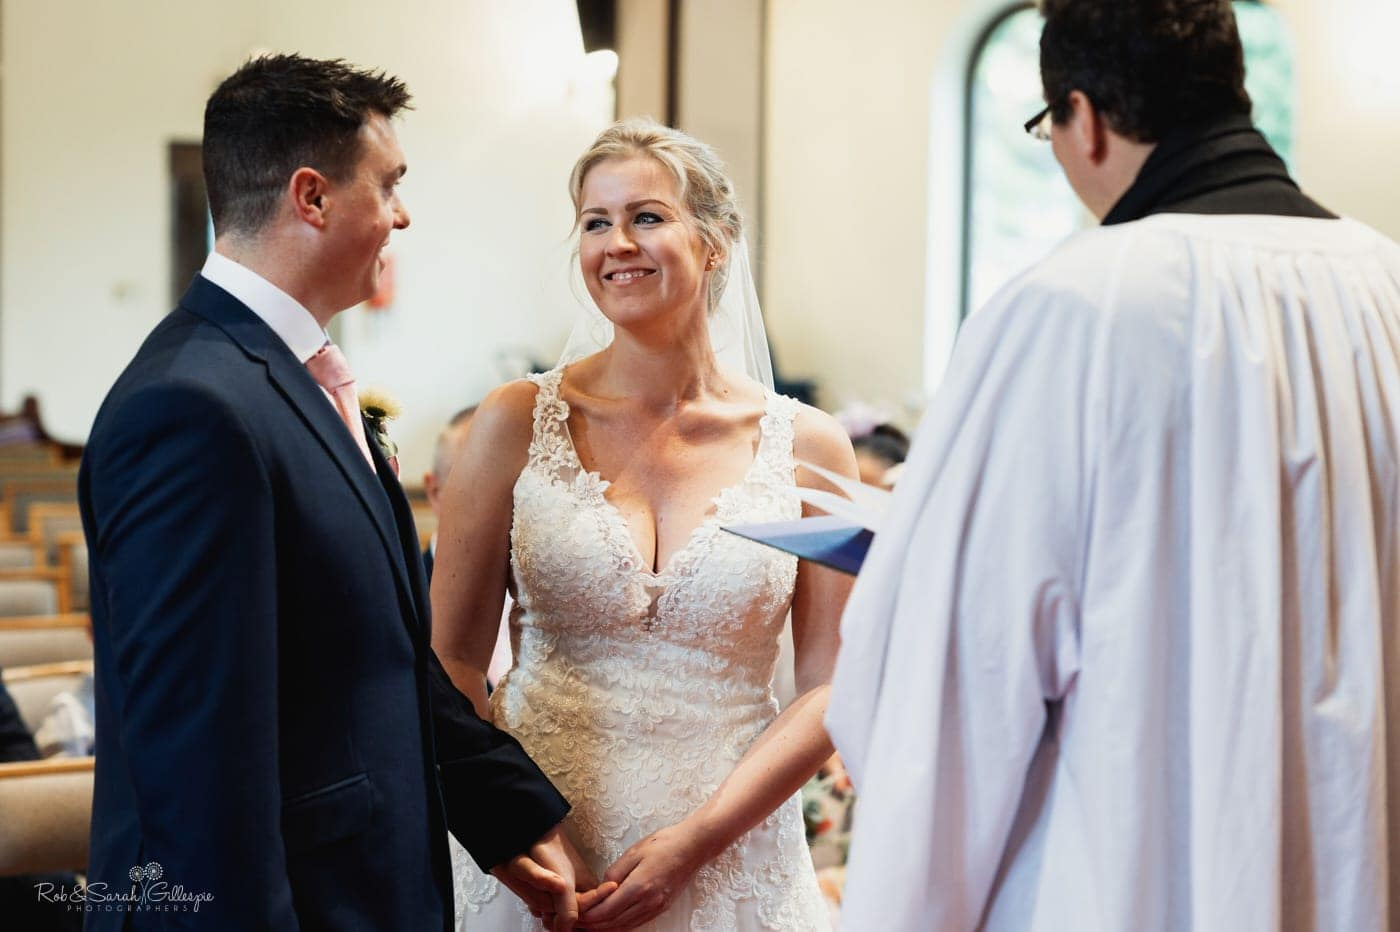 Bride smiling at groom during small wedding service